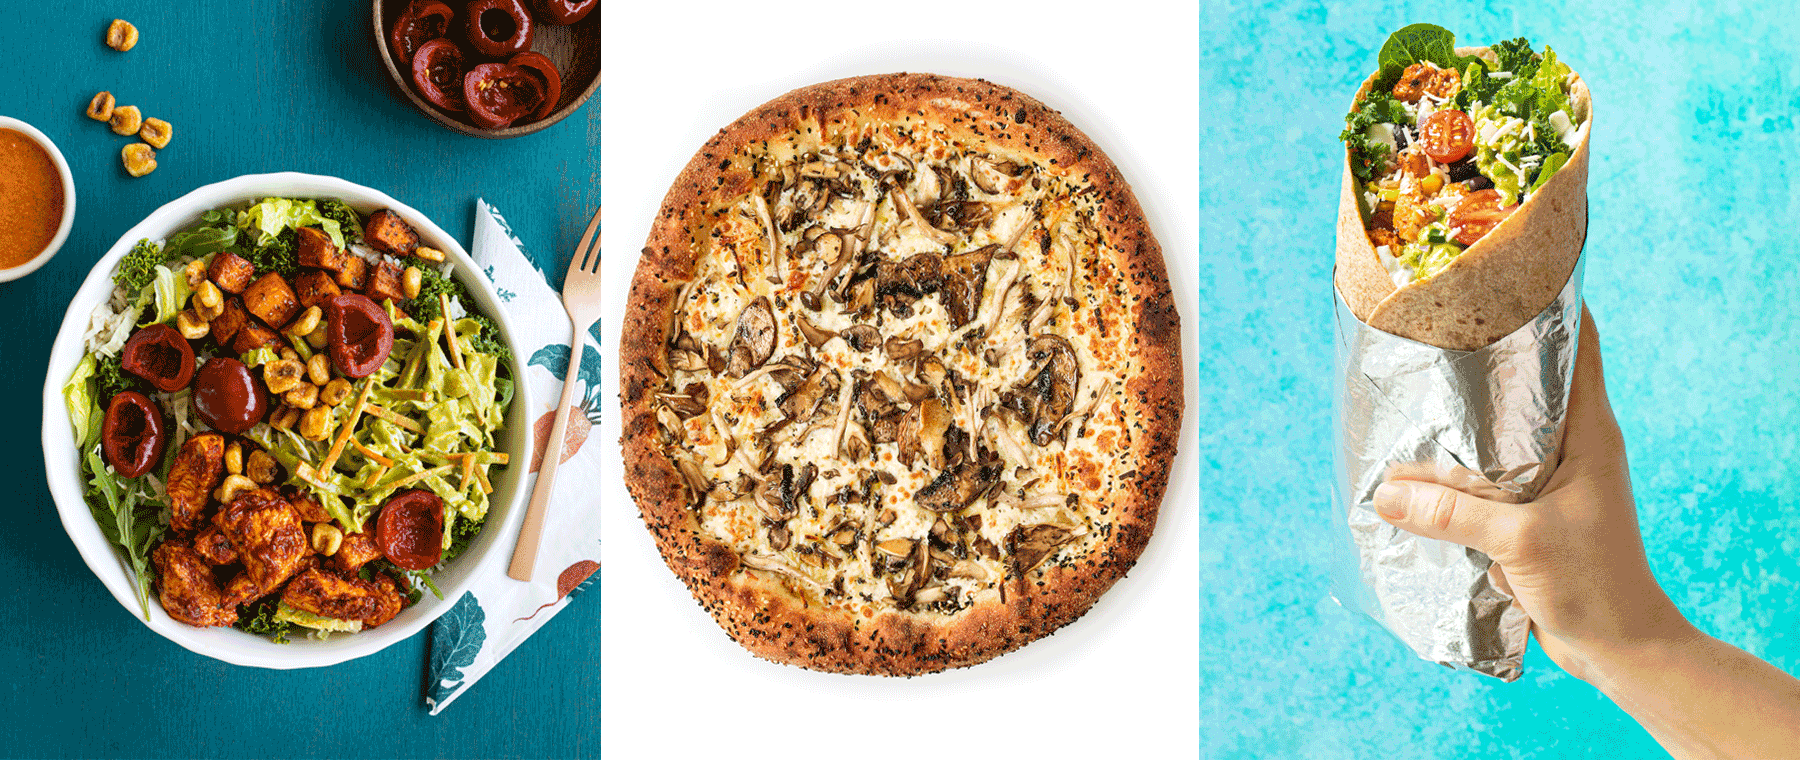 Pivot of the Week: Mad Radish branches out to offer pizza, burritos